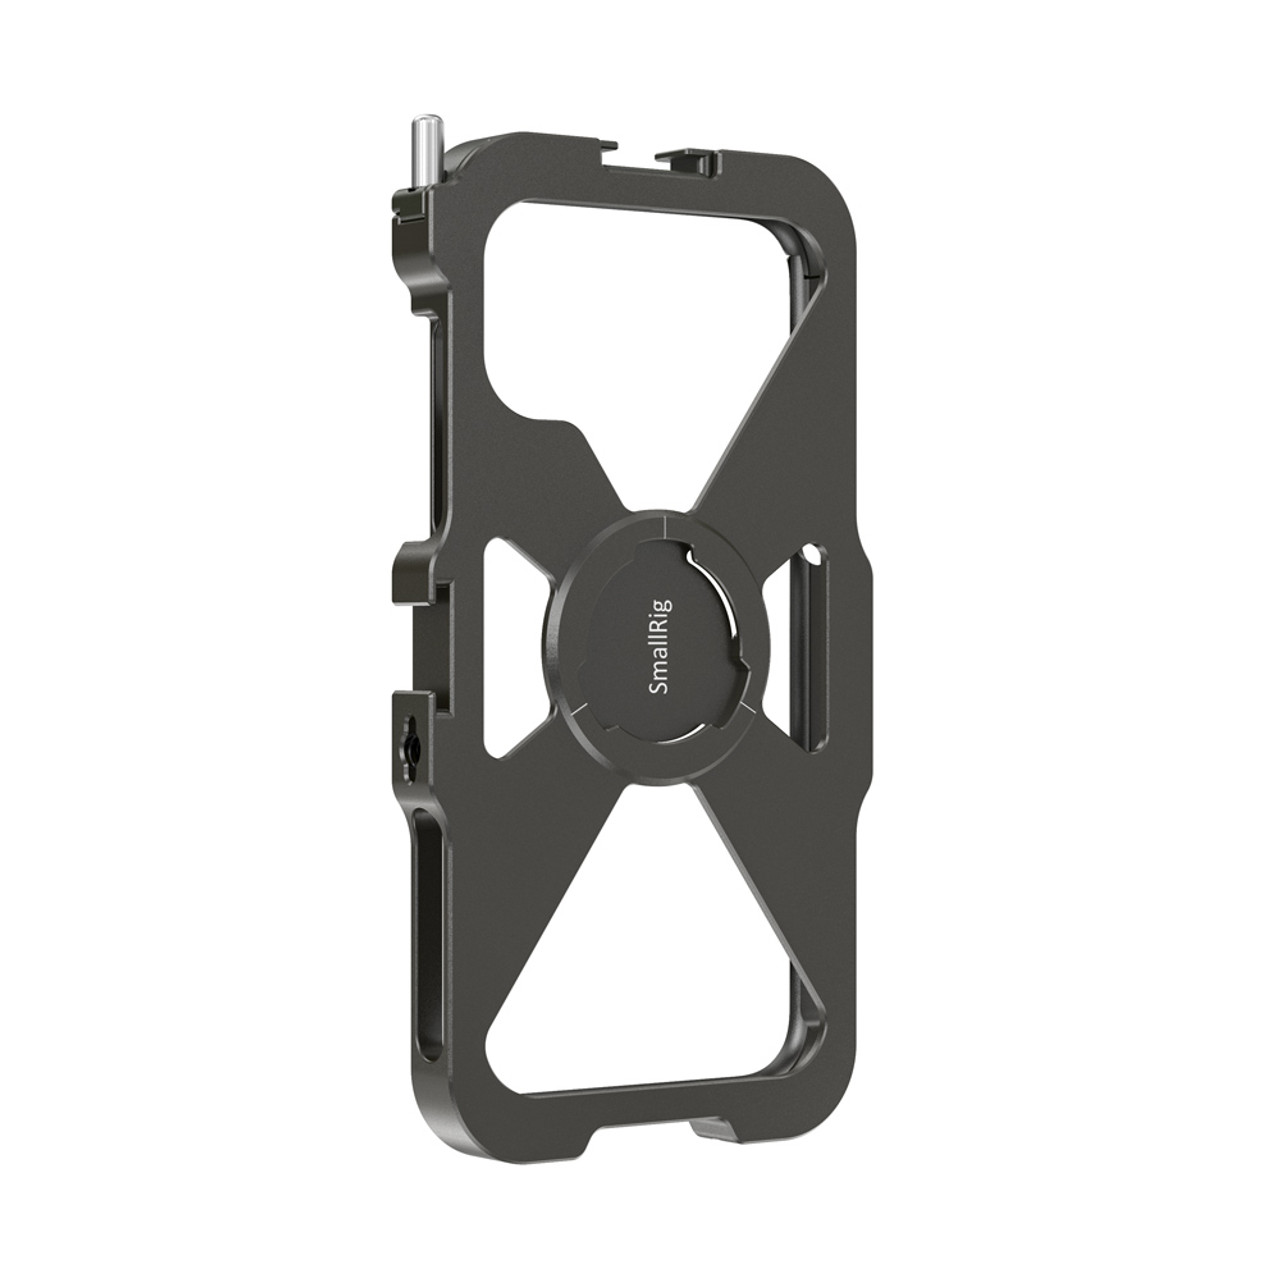 SmallRig Side Handle Aluminum with Cold Shoe and 1//4 Threads for Smartphone Video Rig Cage Mobile Phone Pocket Cage HSS2424